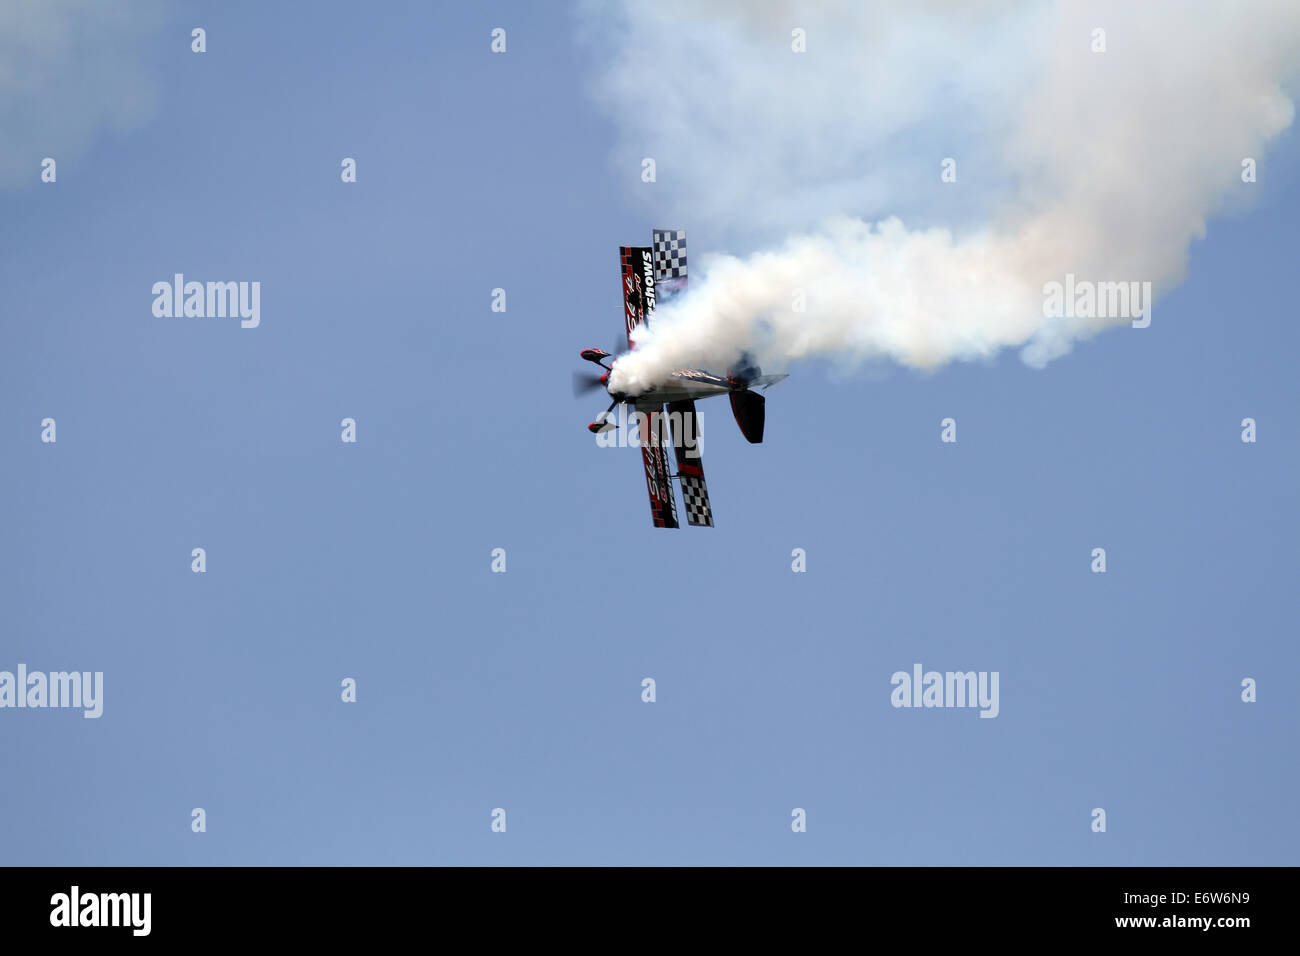 CLEVELAND, OHIO - August, 30: Skip Stewert's Aerobatic Bi-Plane, on August, 30 2014 at The Cleveland National - Stock Image